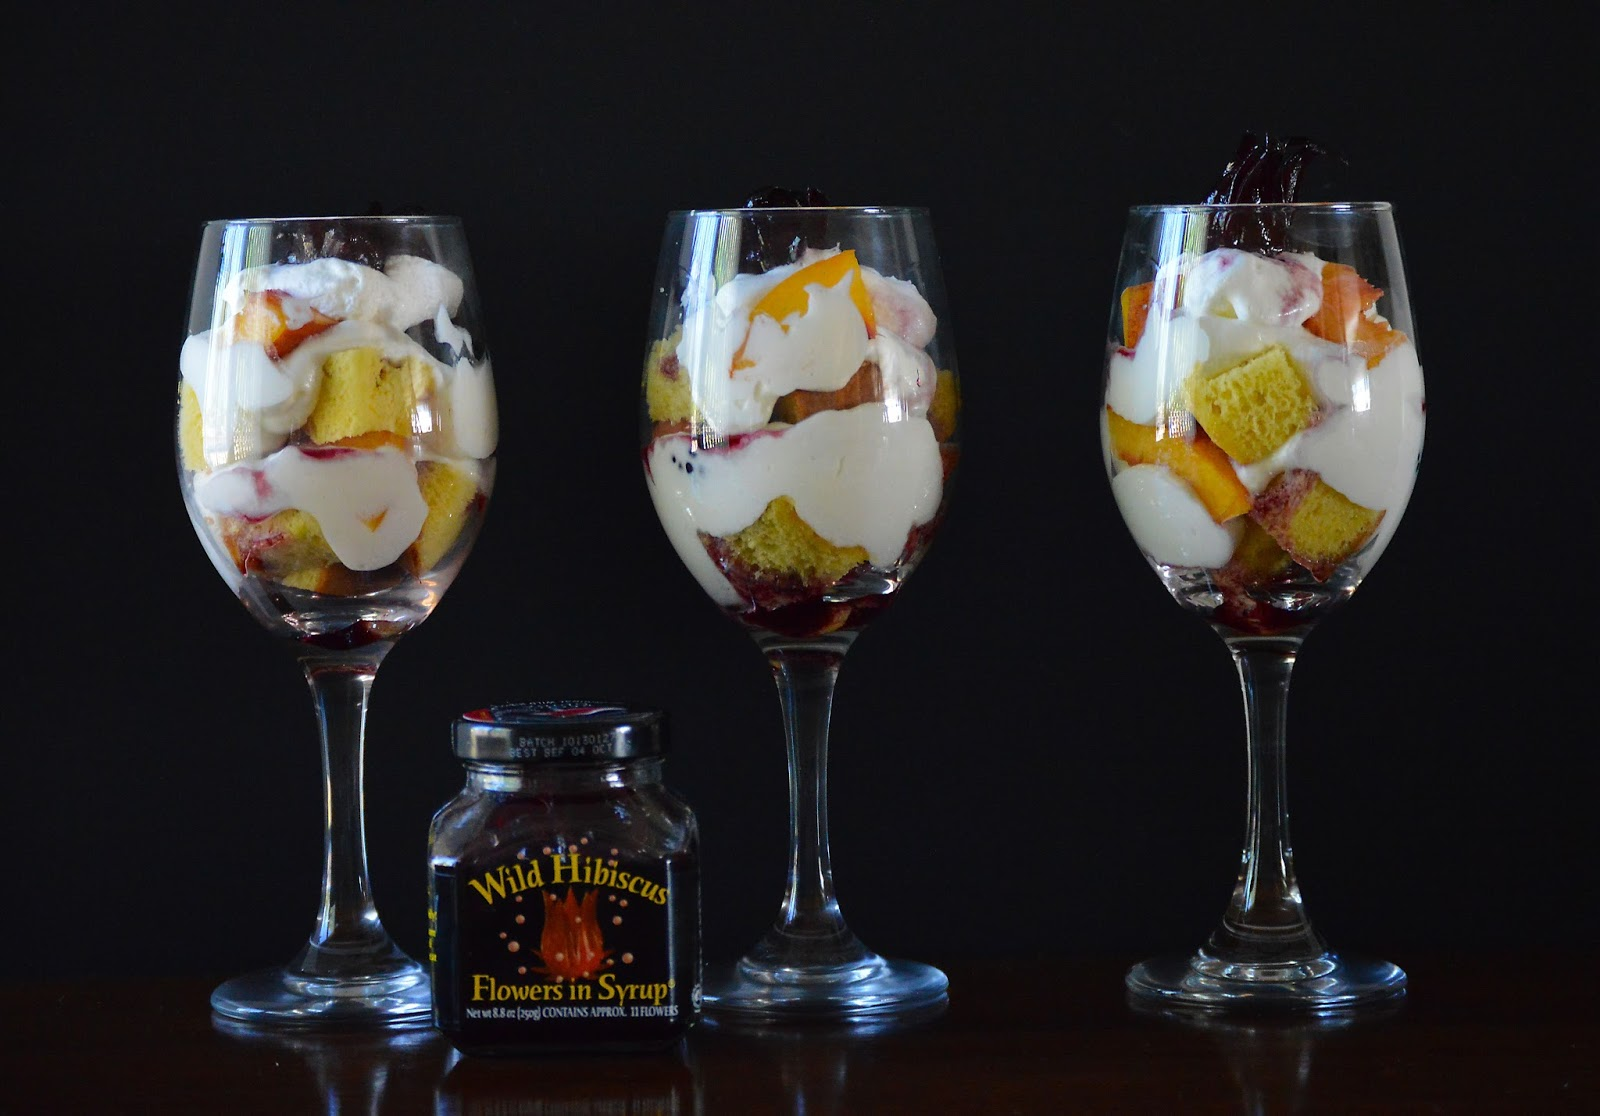 37 Cooks White Chocolate Wild Hibiscus Syrup Trifles